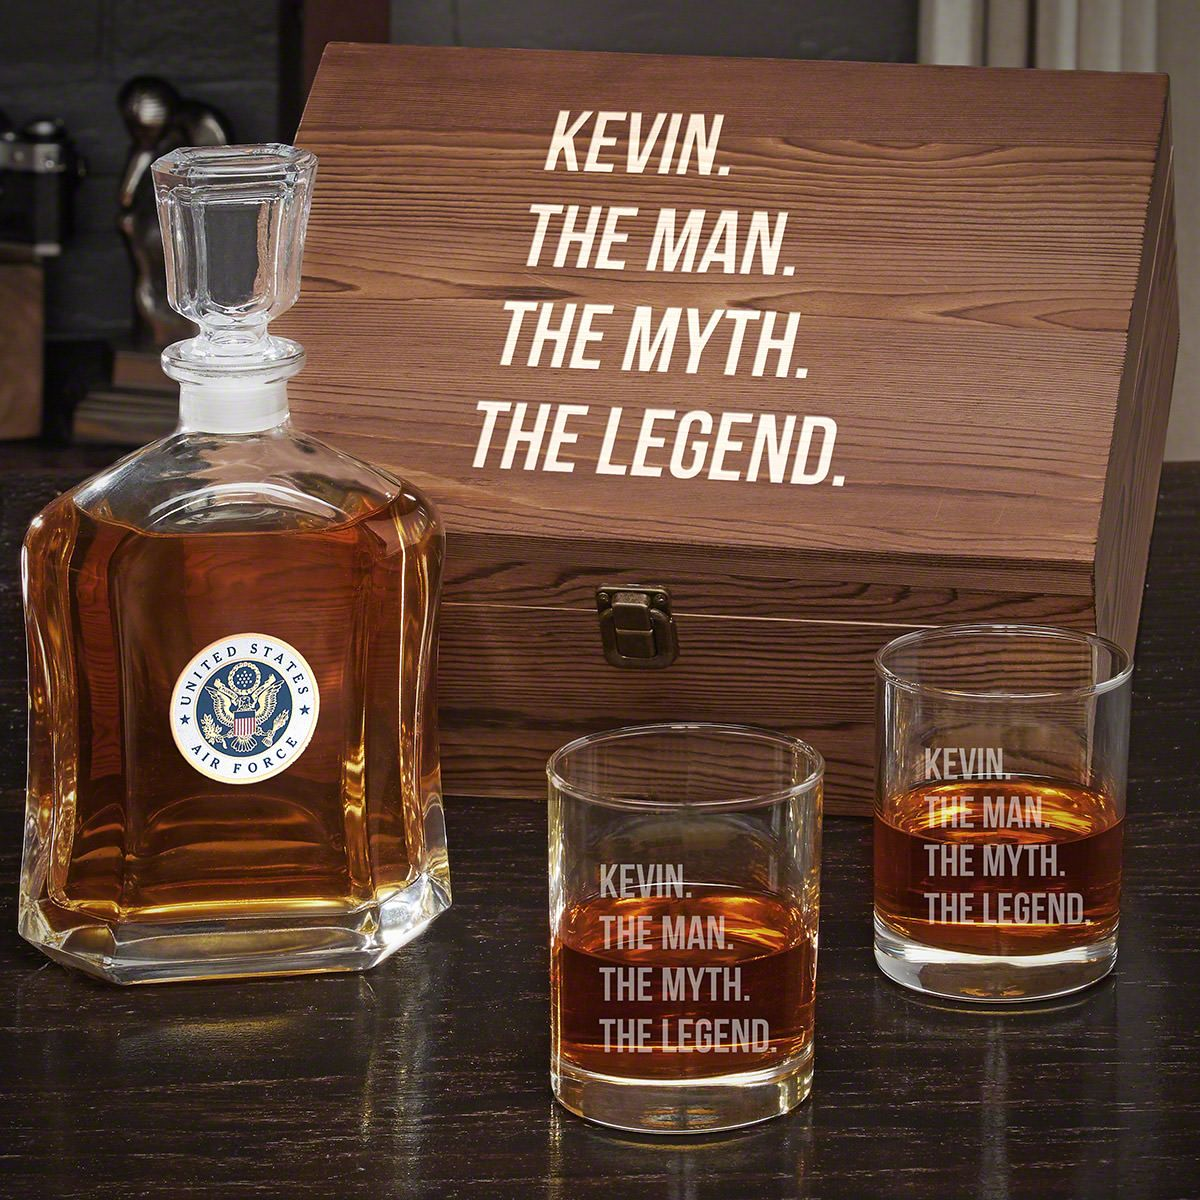 Man Myth Legend Personalized Whiskey Decanter Set with Eastham Glasses - Gift for Air Force